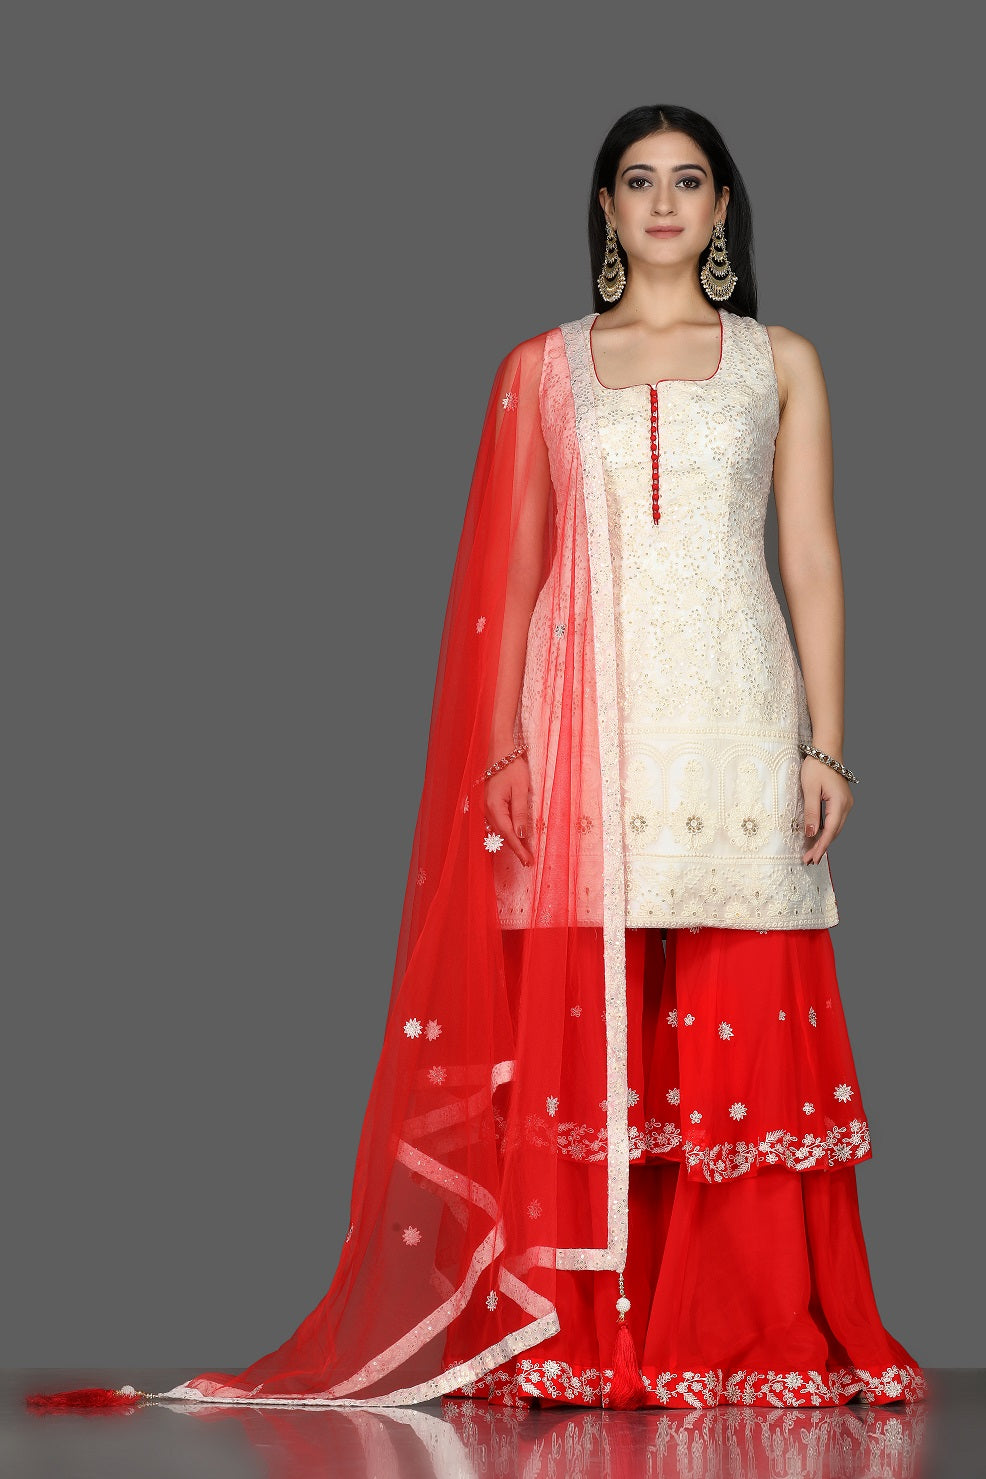 Shop beautiful white and red georgette Lucknowi sharara suit online in USA with dupatta. Flaunt ethnic fashion with exquisite designer lehenga, Indian wedding dresses, Anarkali suits from Pure Elegance Indian fashion boutique in USA.-full view